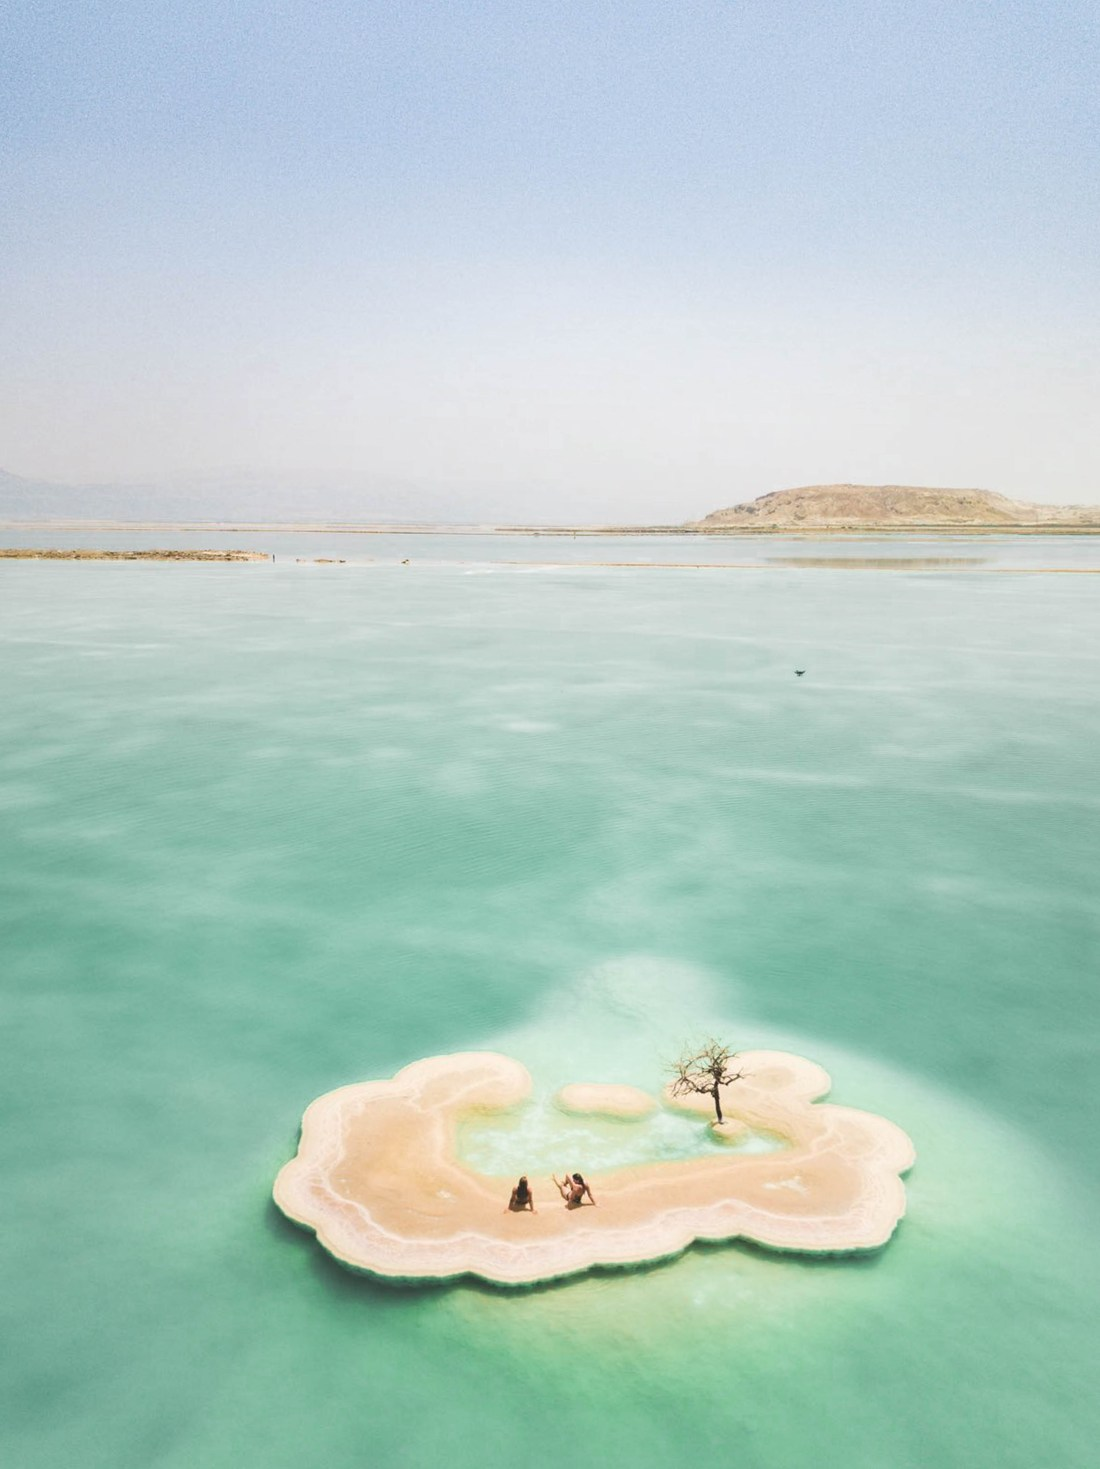 Everything You Need To Know To Swim In The Dead Sea